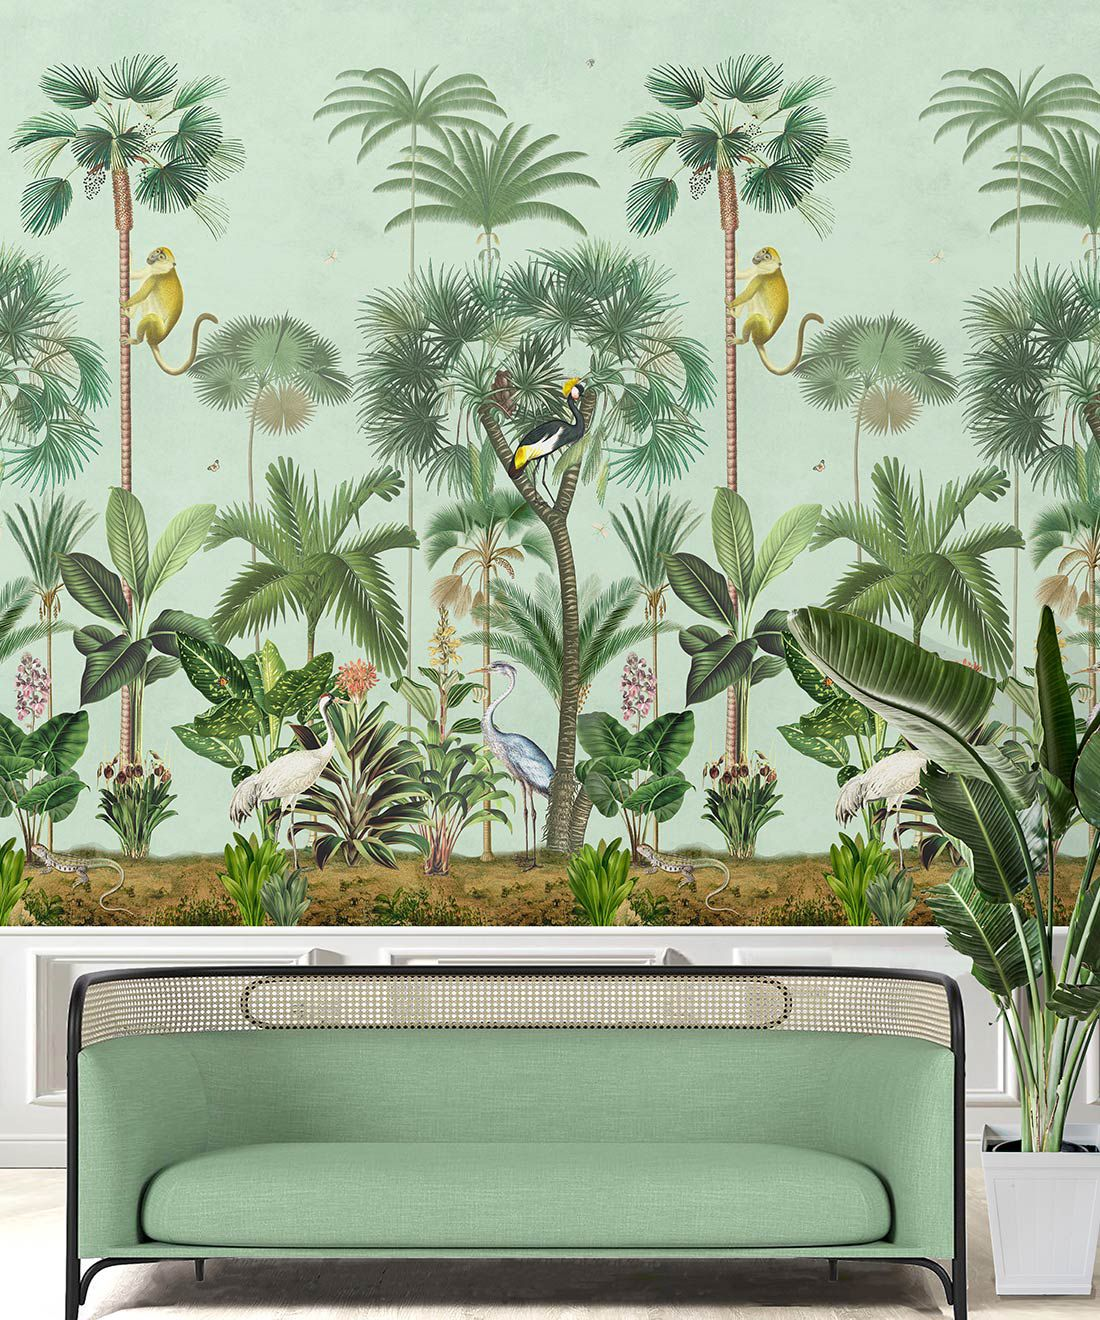 Indian Summer Wallpaper Mural •Bethany Linz • Palm Tree Mural • Blue • Inisitu with mint green sofa